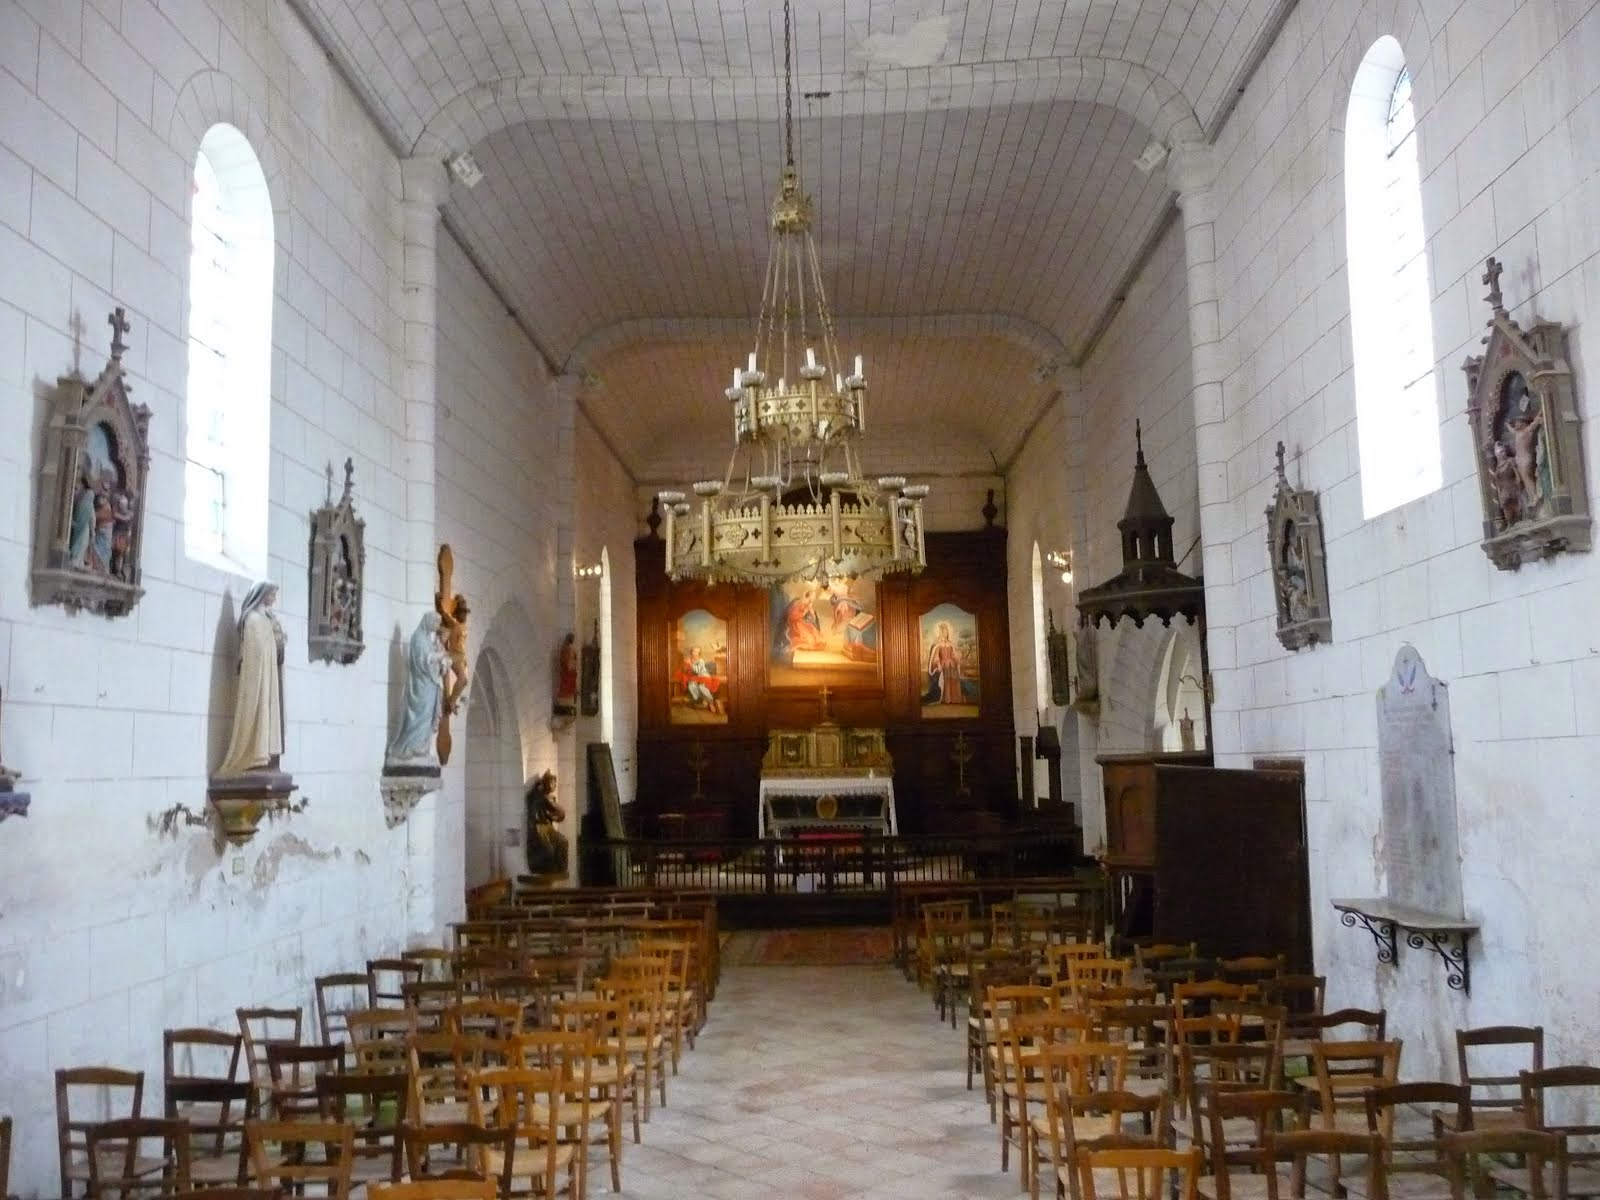 Interior view of Bonnes church